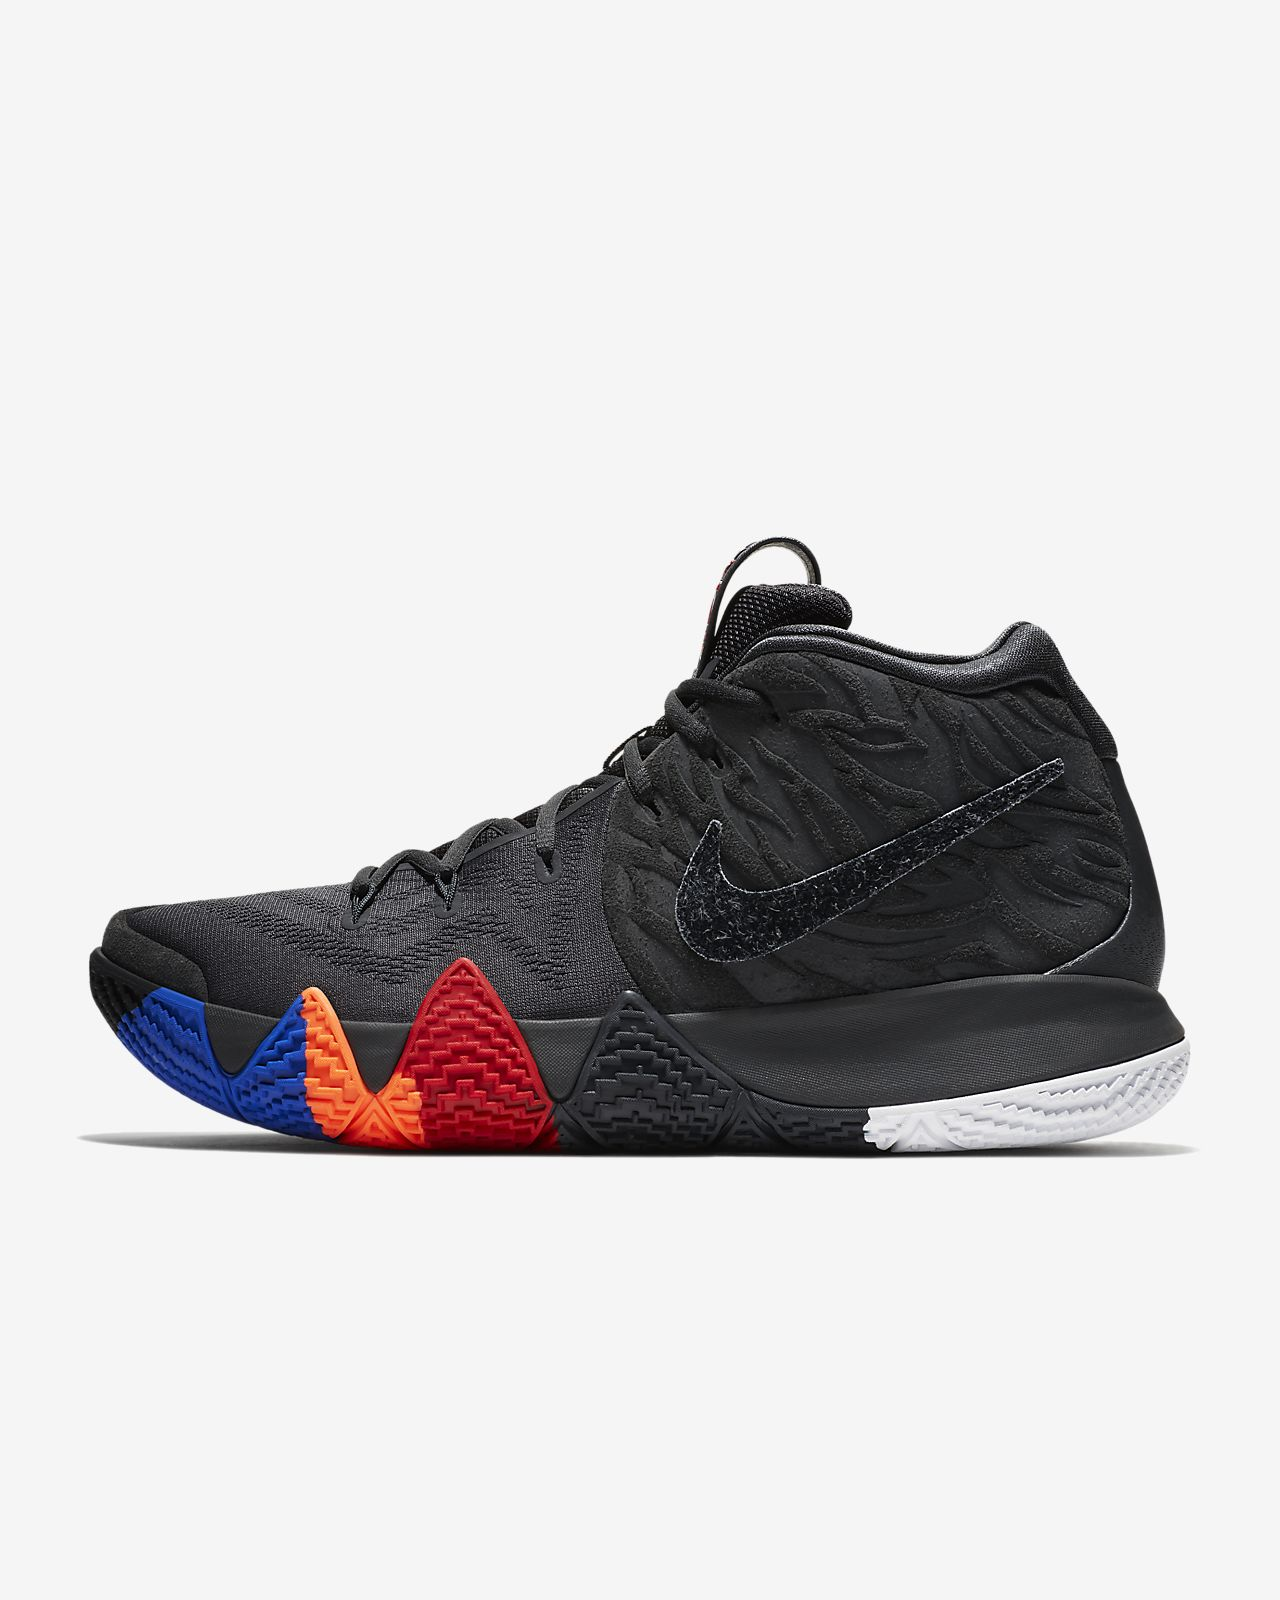 Magasin NIKE Air Max 95, Nike Kyrie 4 New Colorways, Nike